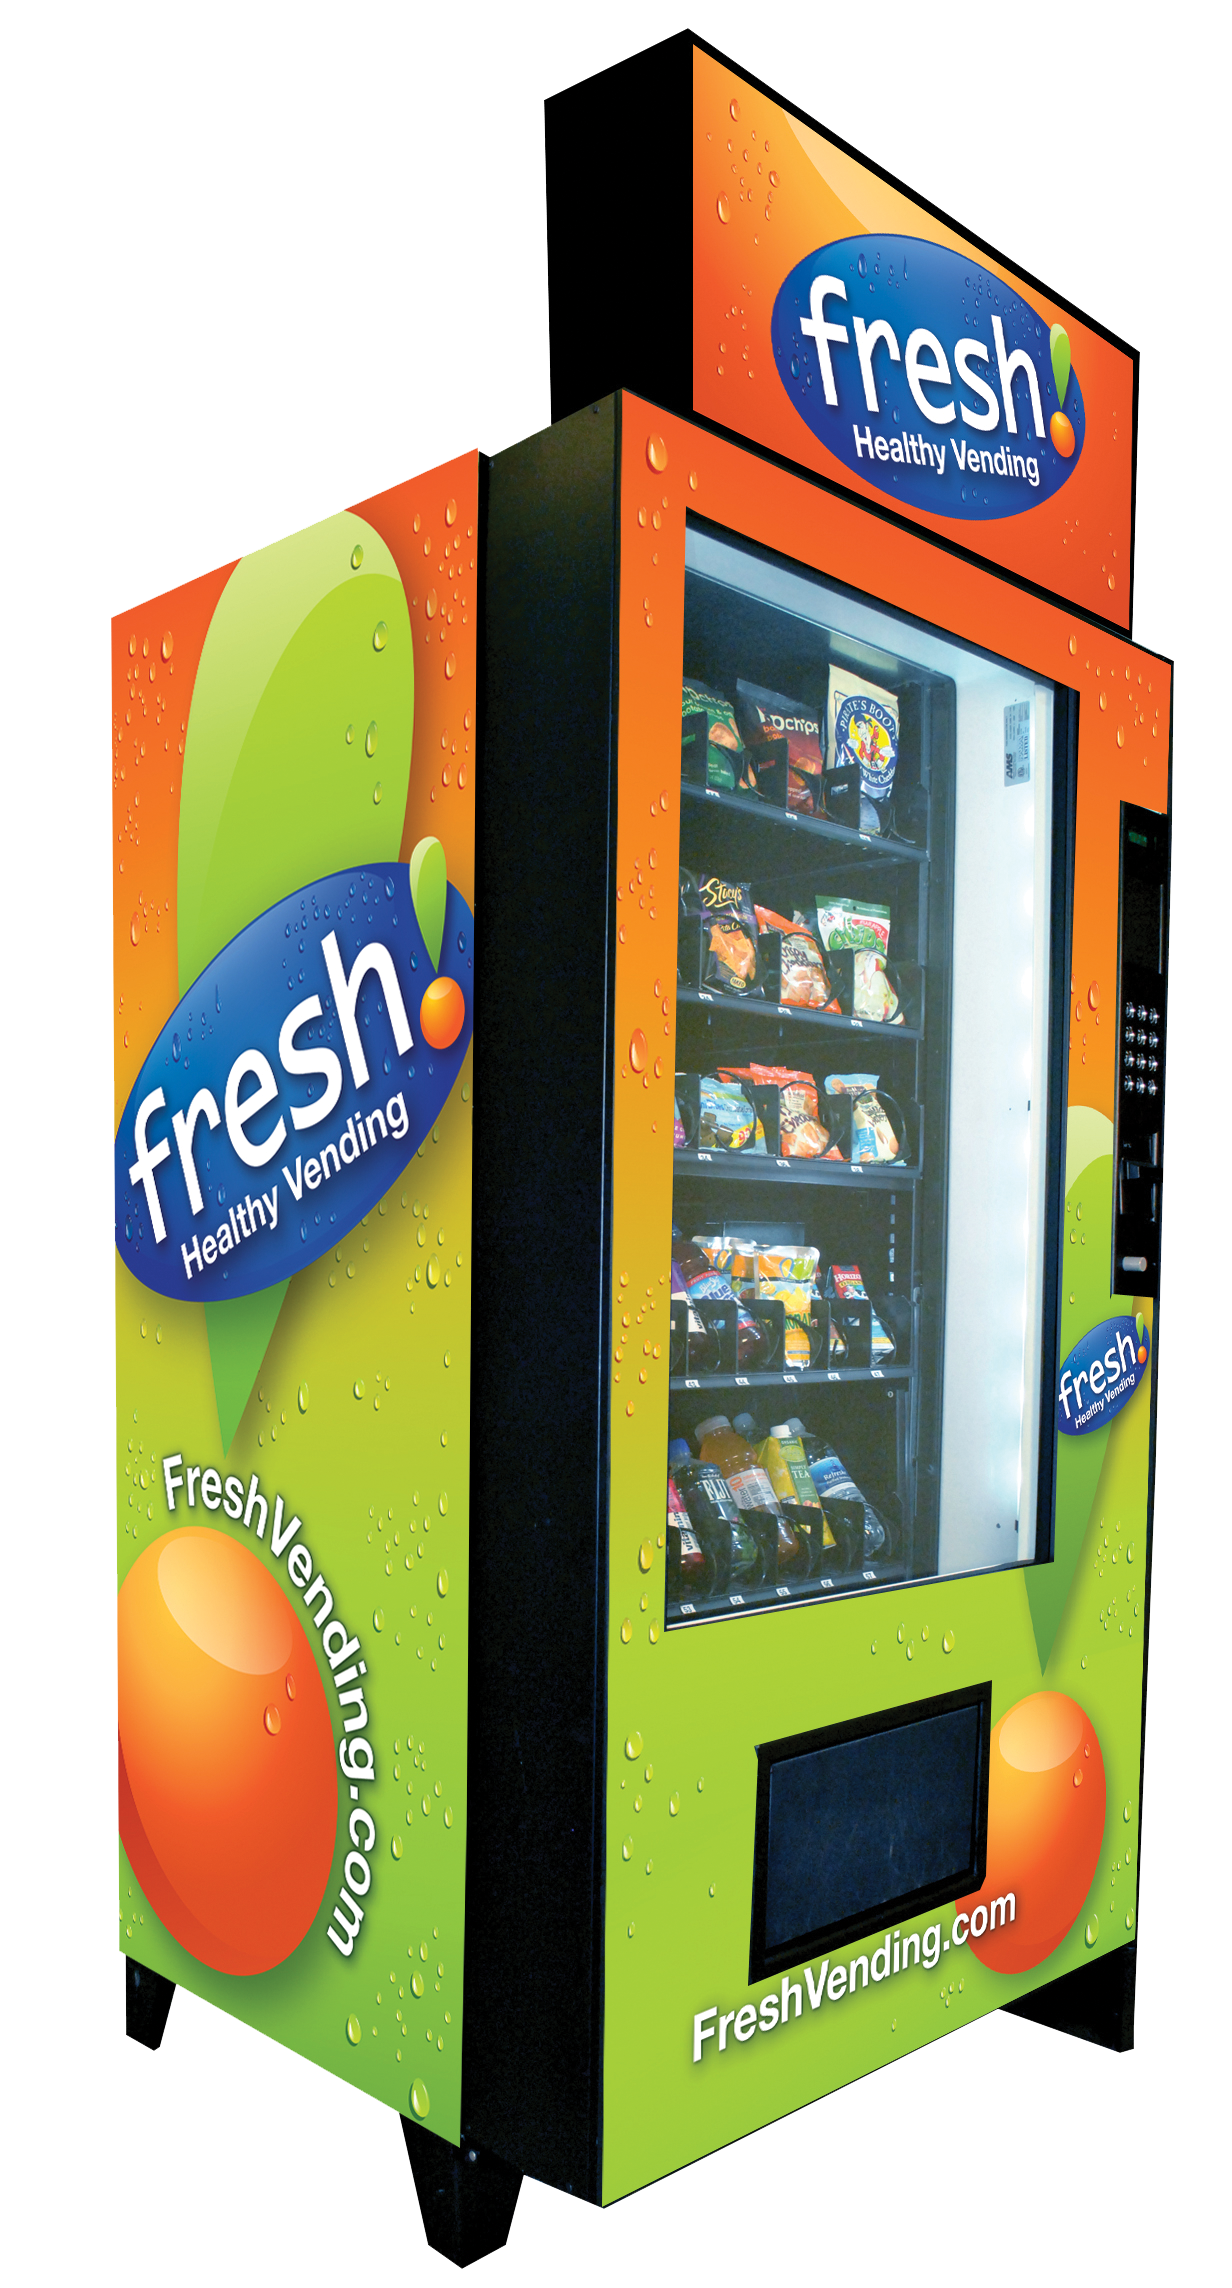 contract food service providers and vending machine Call j bos vending service our machines are placed at no cost to you, the client, with no long term contract required service - to proactively stock product and provide timely service from installation to maintenance selection - to offer varied product selection that is never dictated by any.